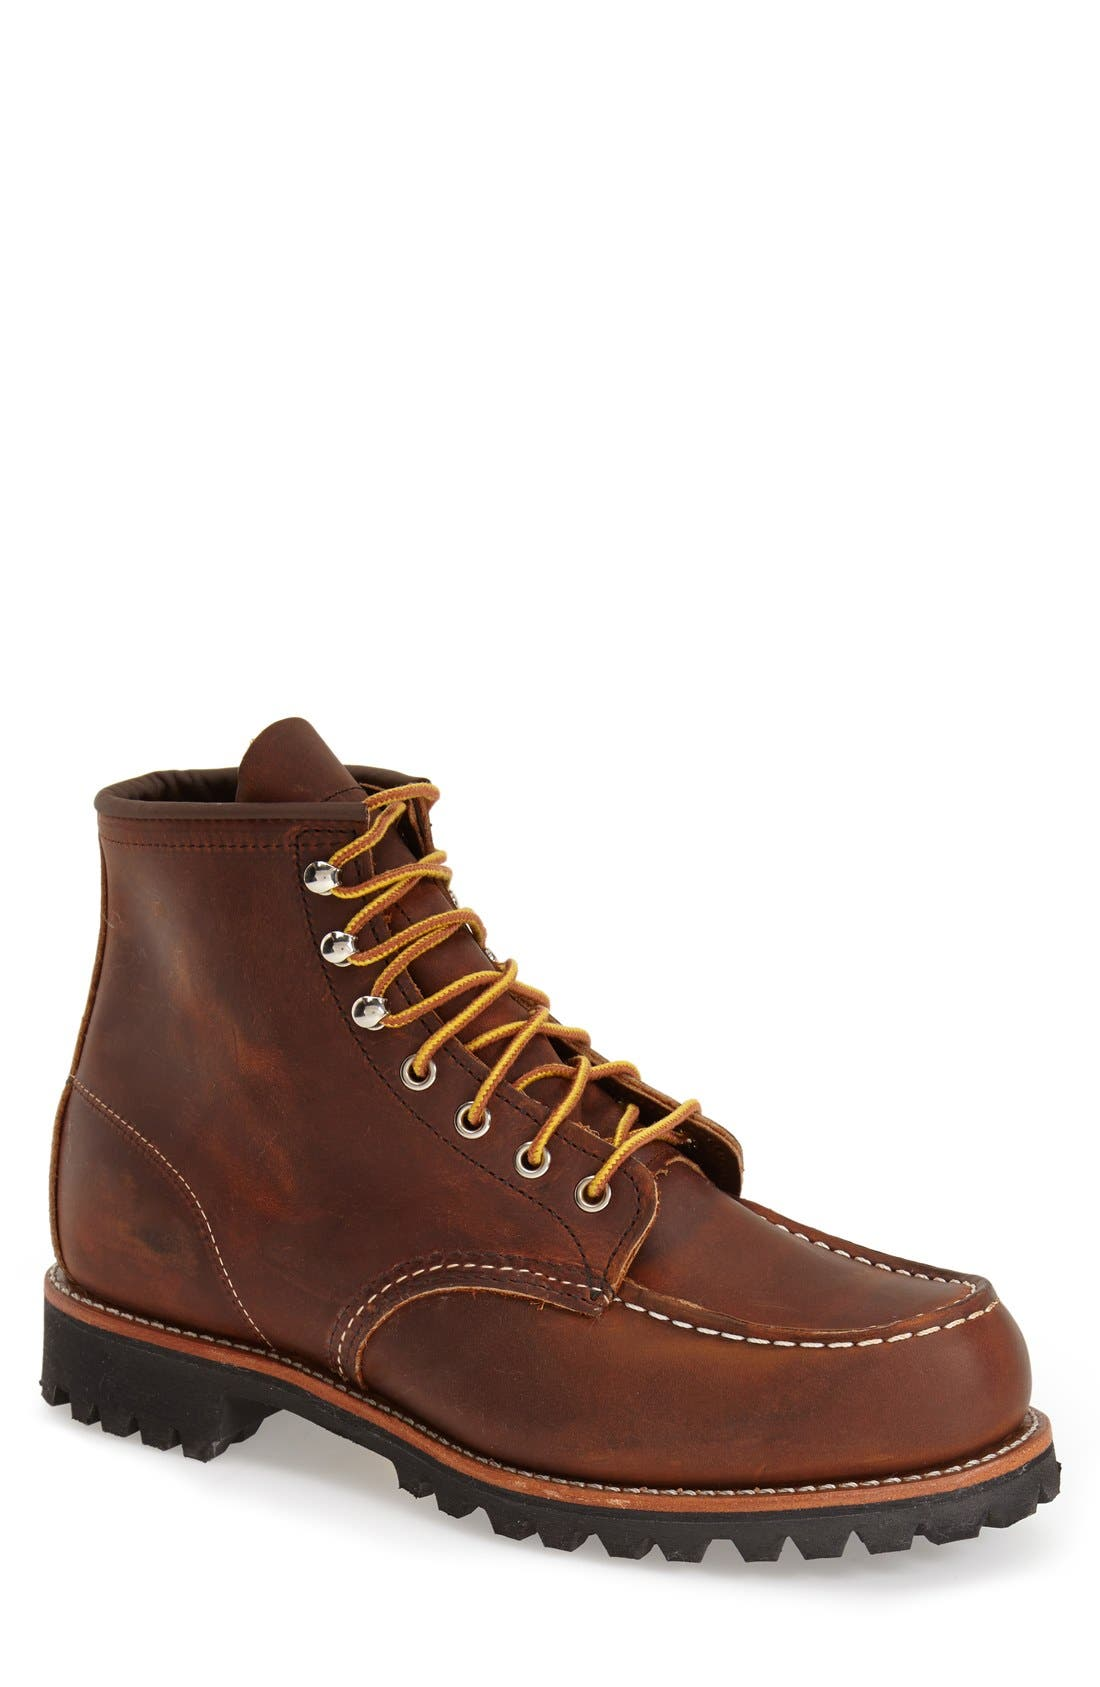 'Roughneck' Boot,                             Main thumbnail 1, color,                             COPPER ROUGH AND TOUGH LEATHER